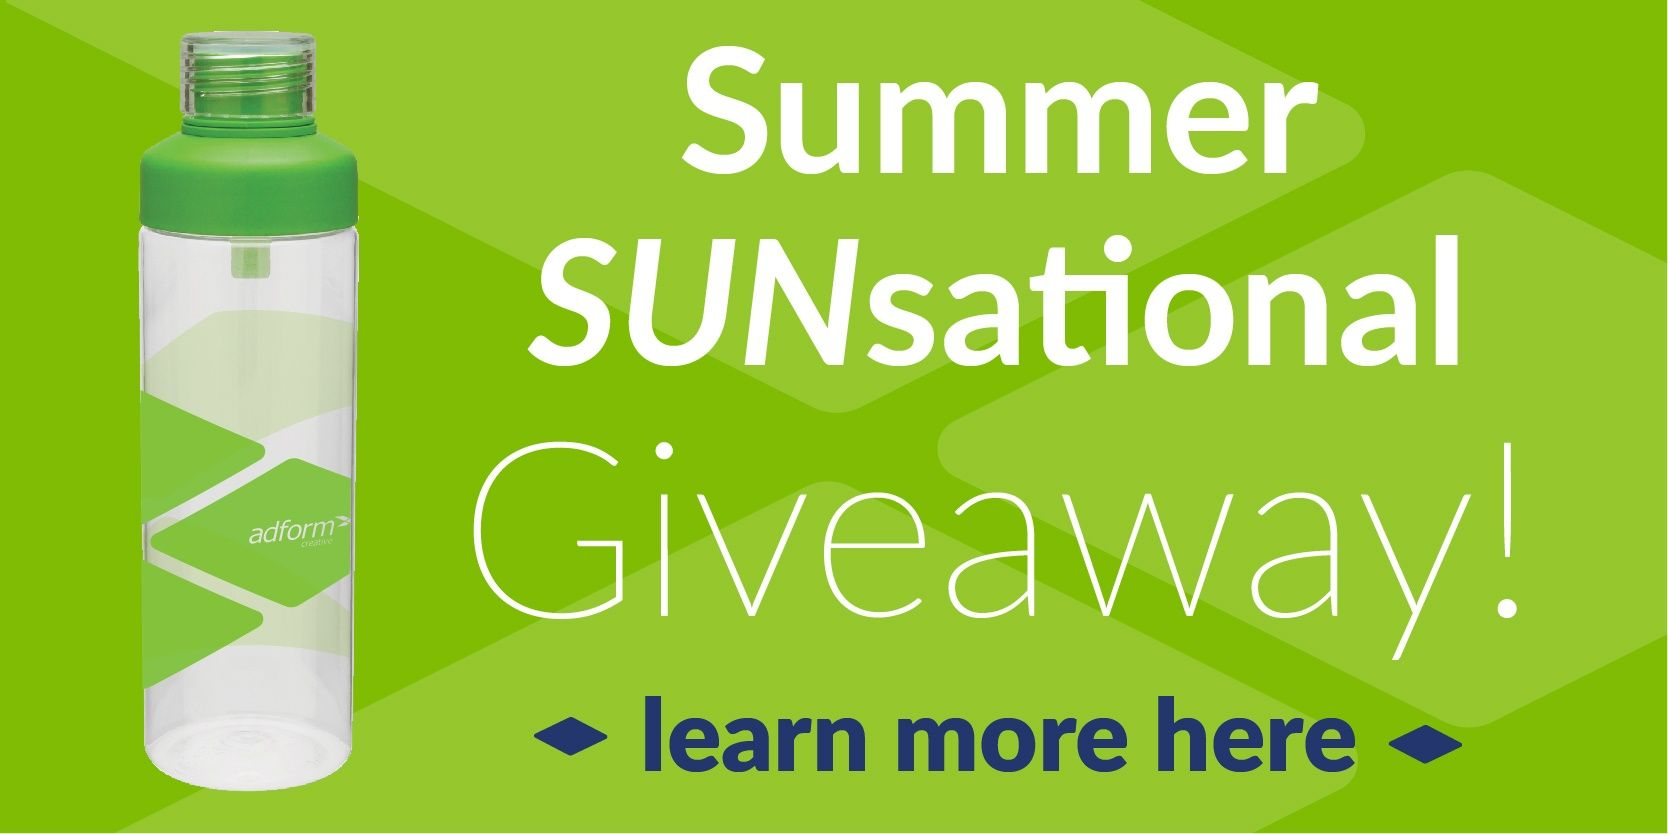 Summer SUNsational Giveaway